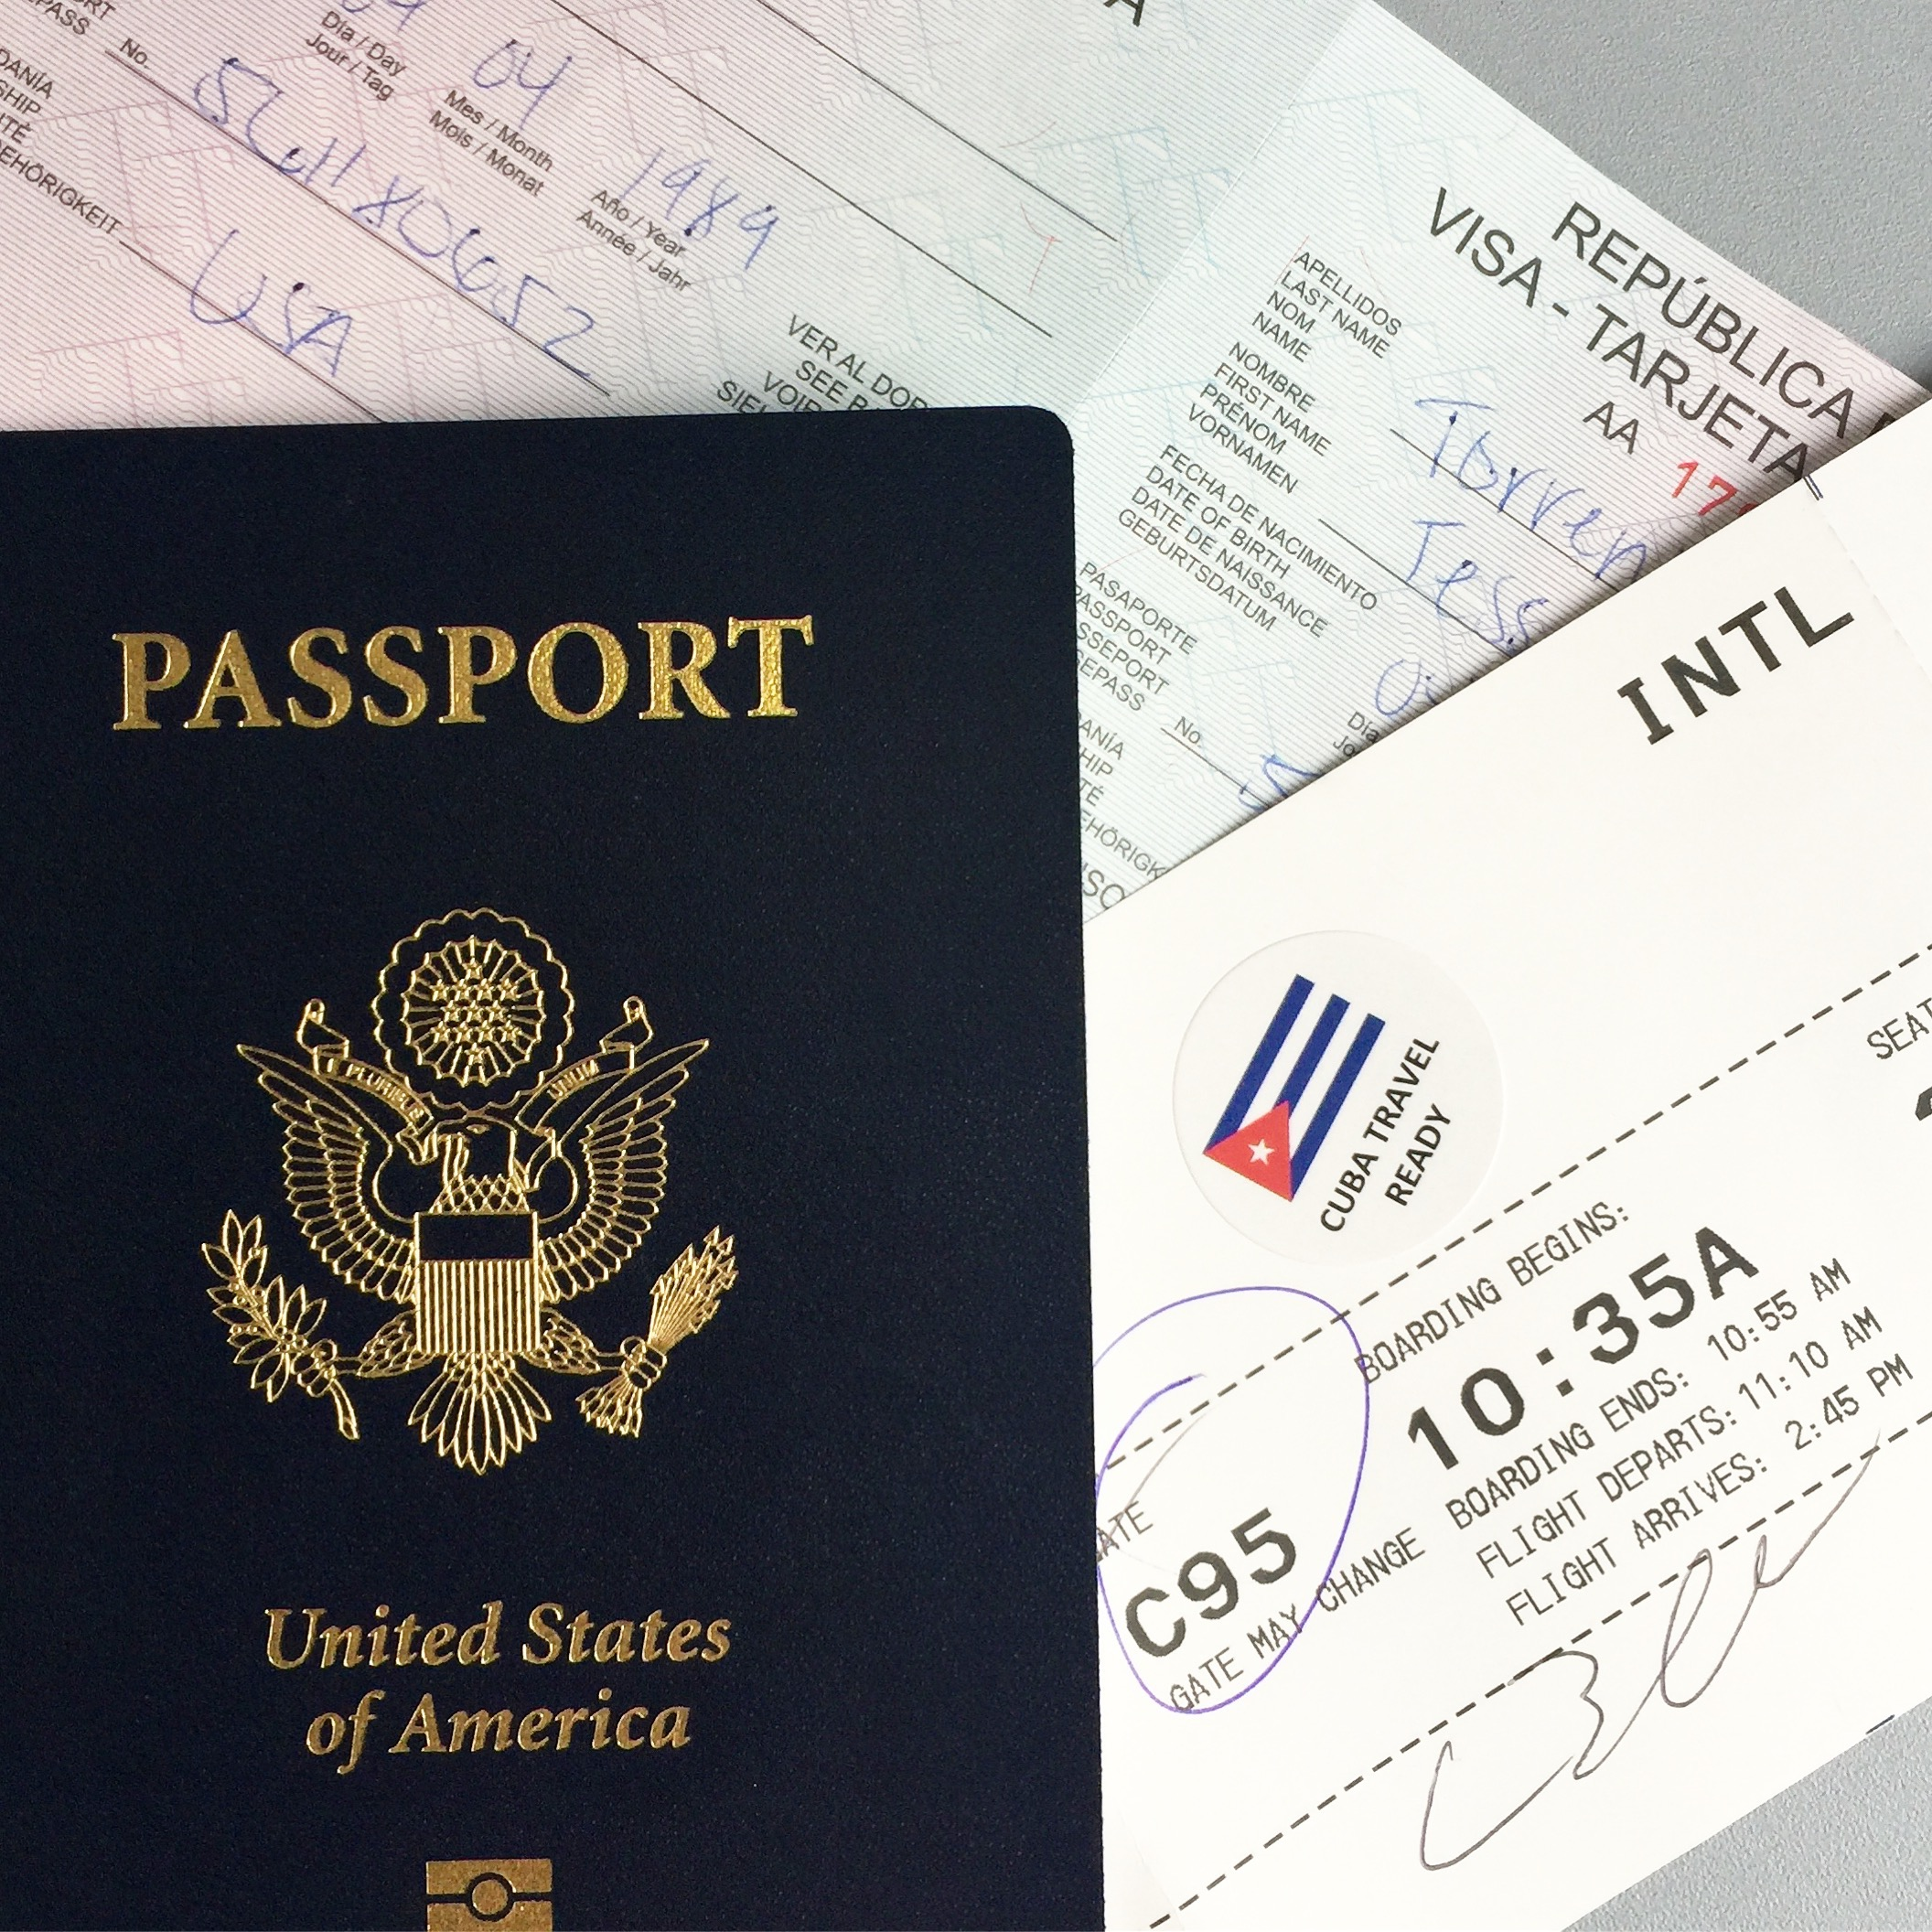 Easy visa process for travel to Cuba